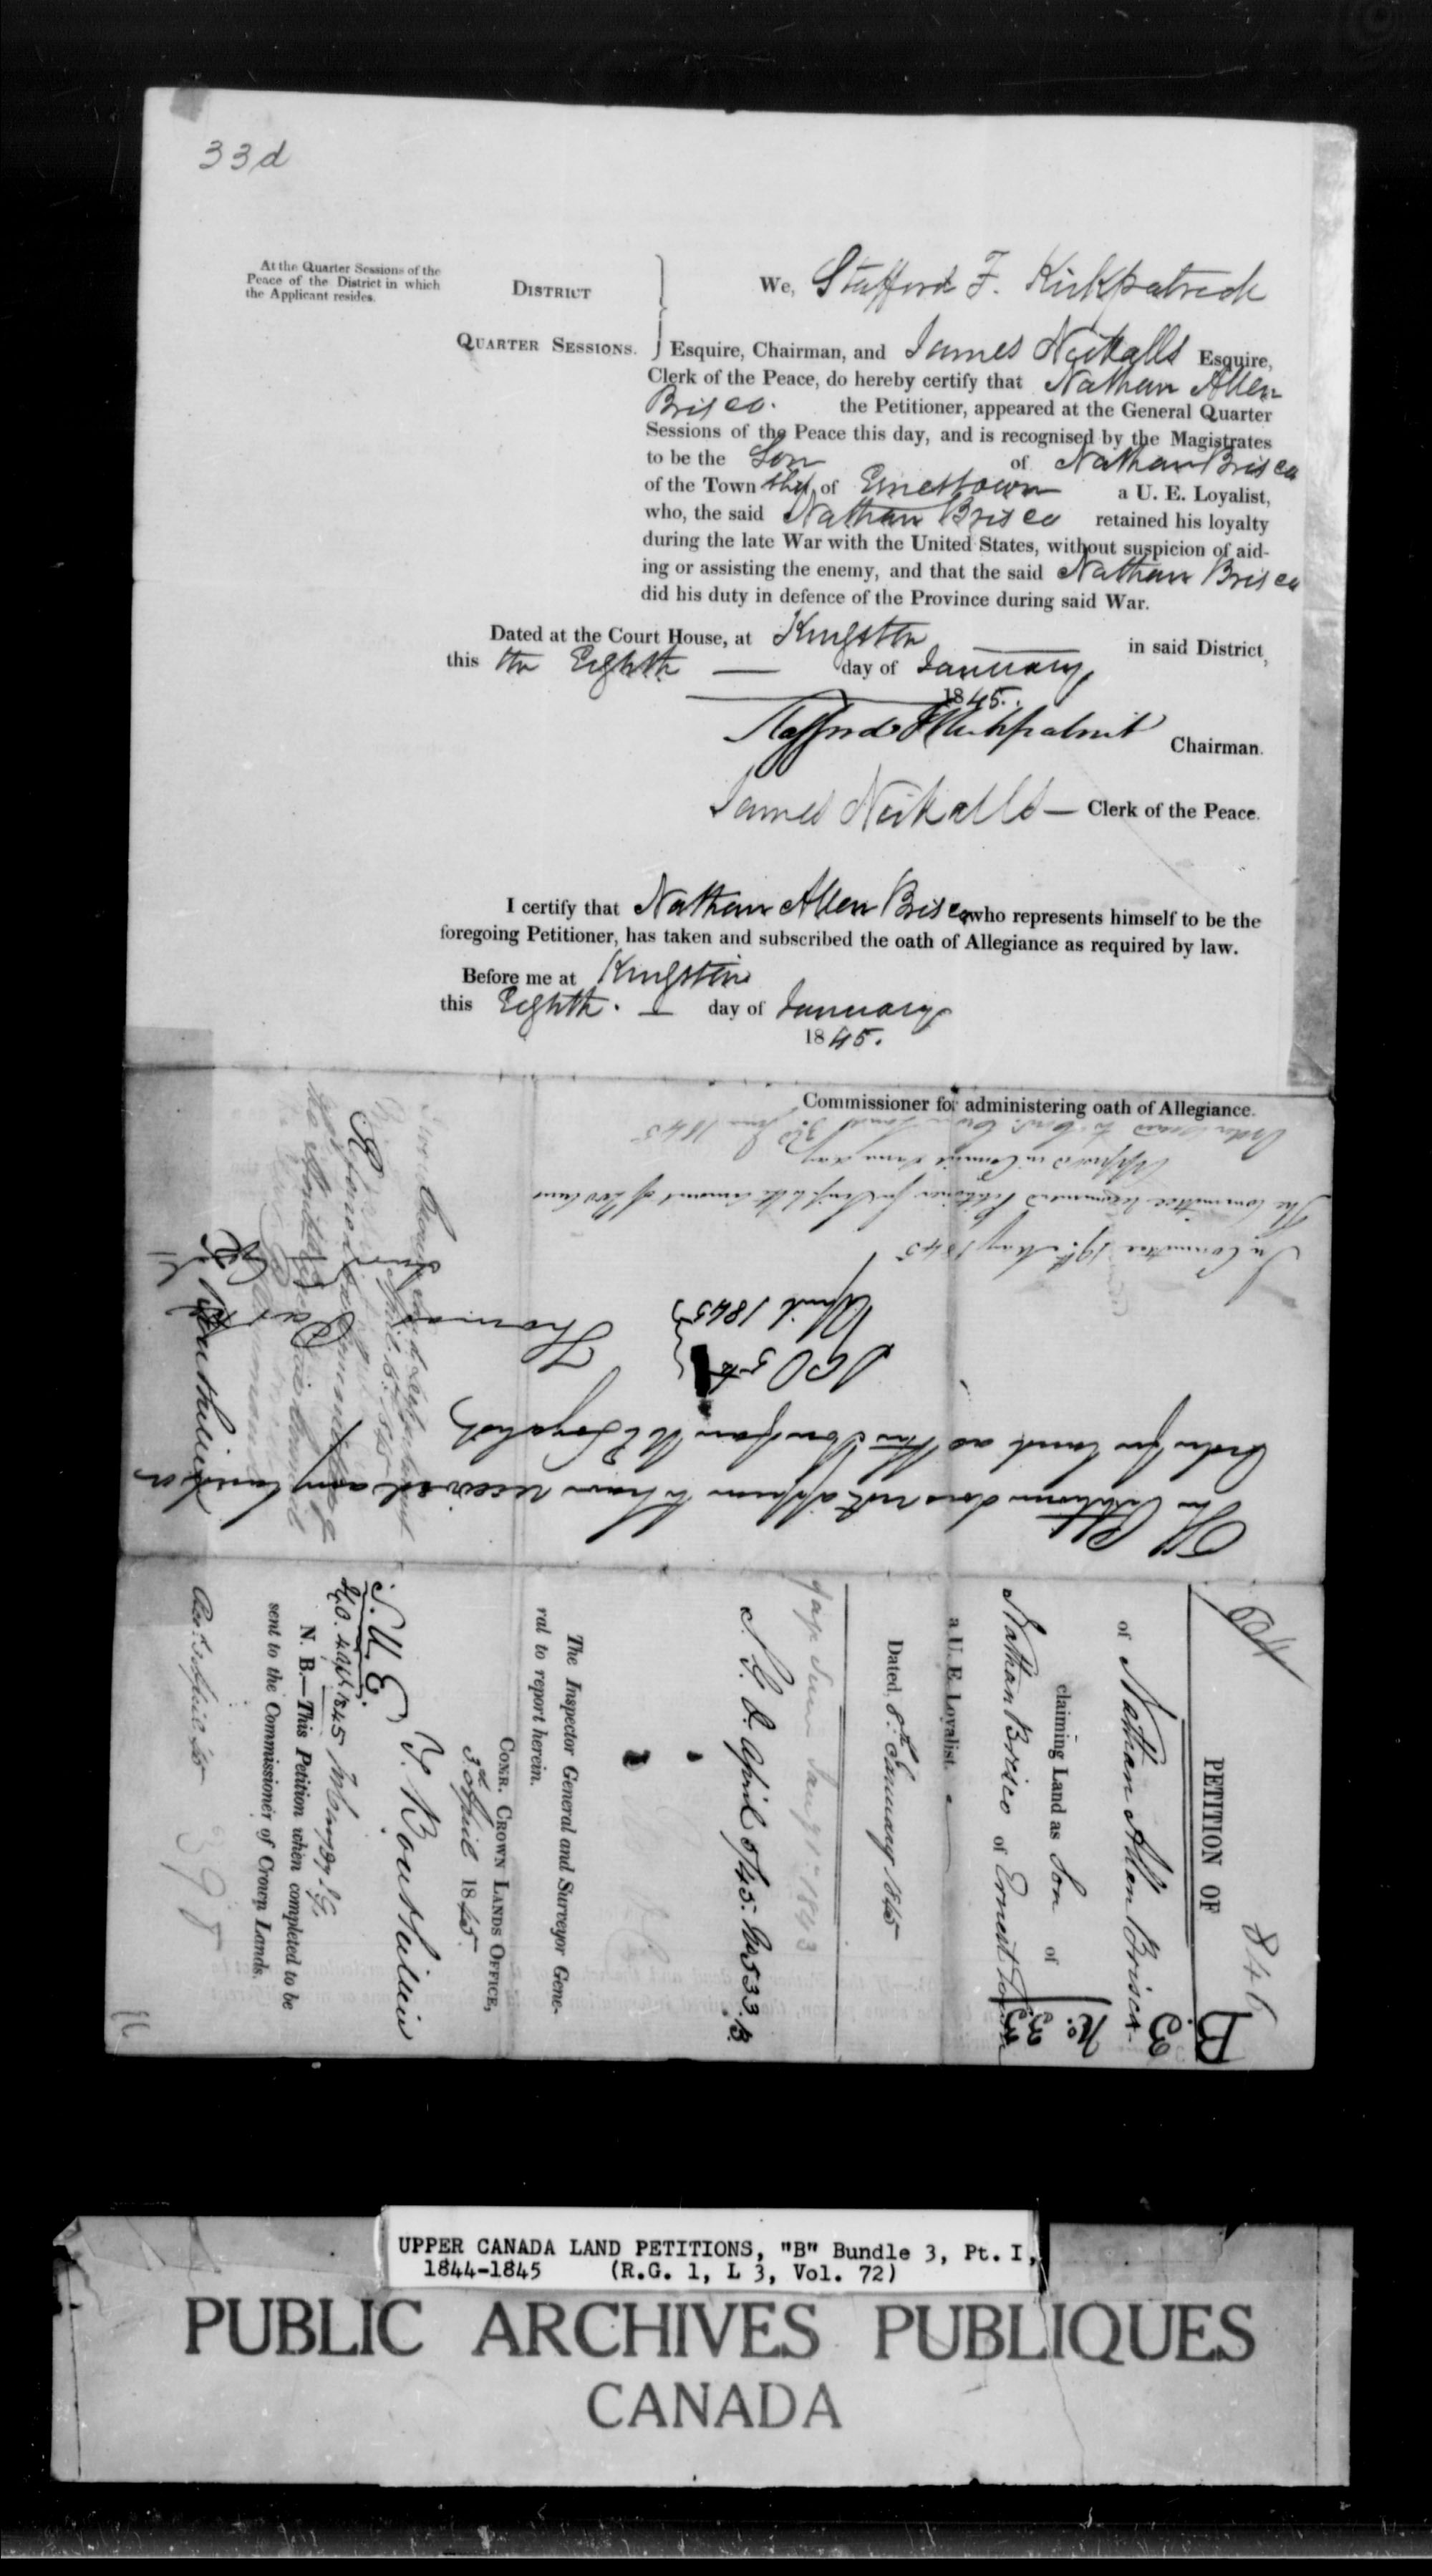 Title: Upper Canada Land Petitions (1763-1865) - Mikan Number: 205131 - Microform: c-1637